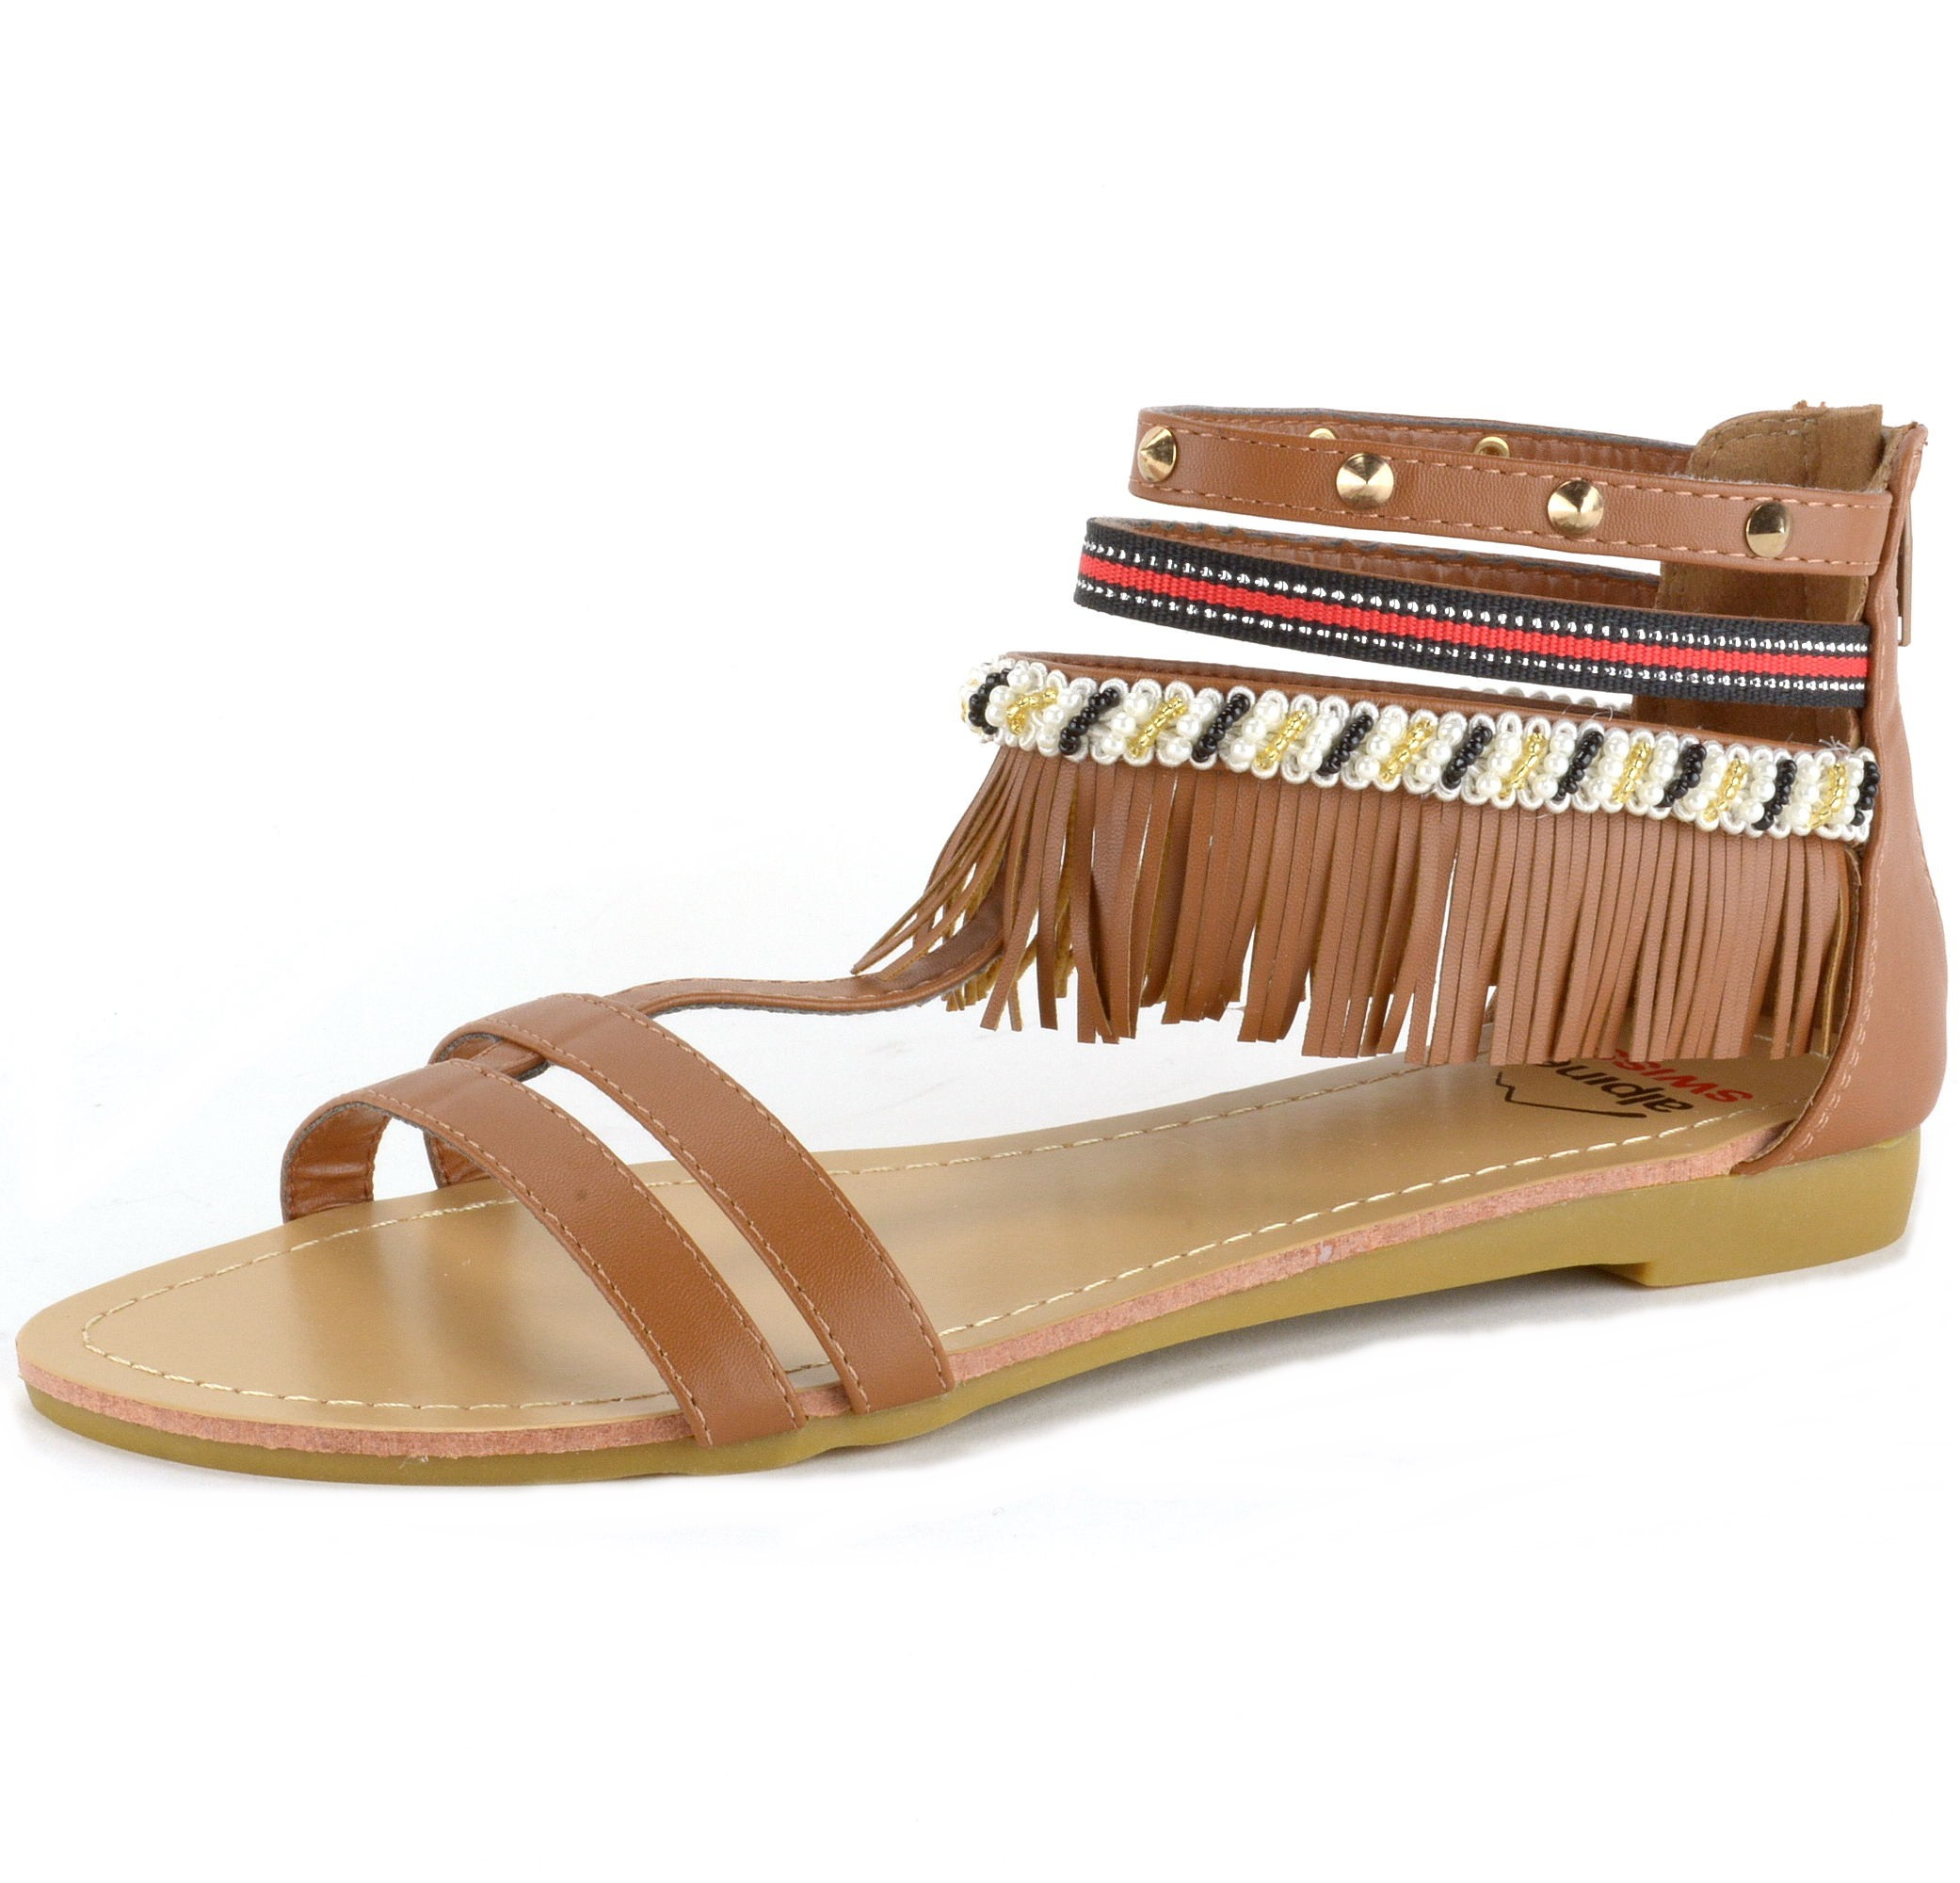 Alpine Swiss Womens Fringe Sandals Beaded Amp Studded